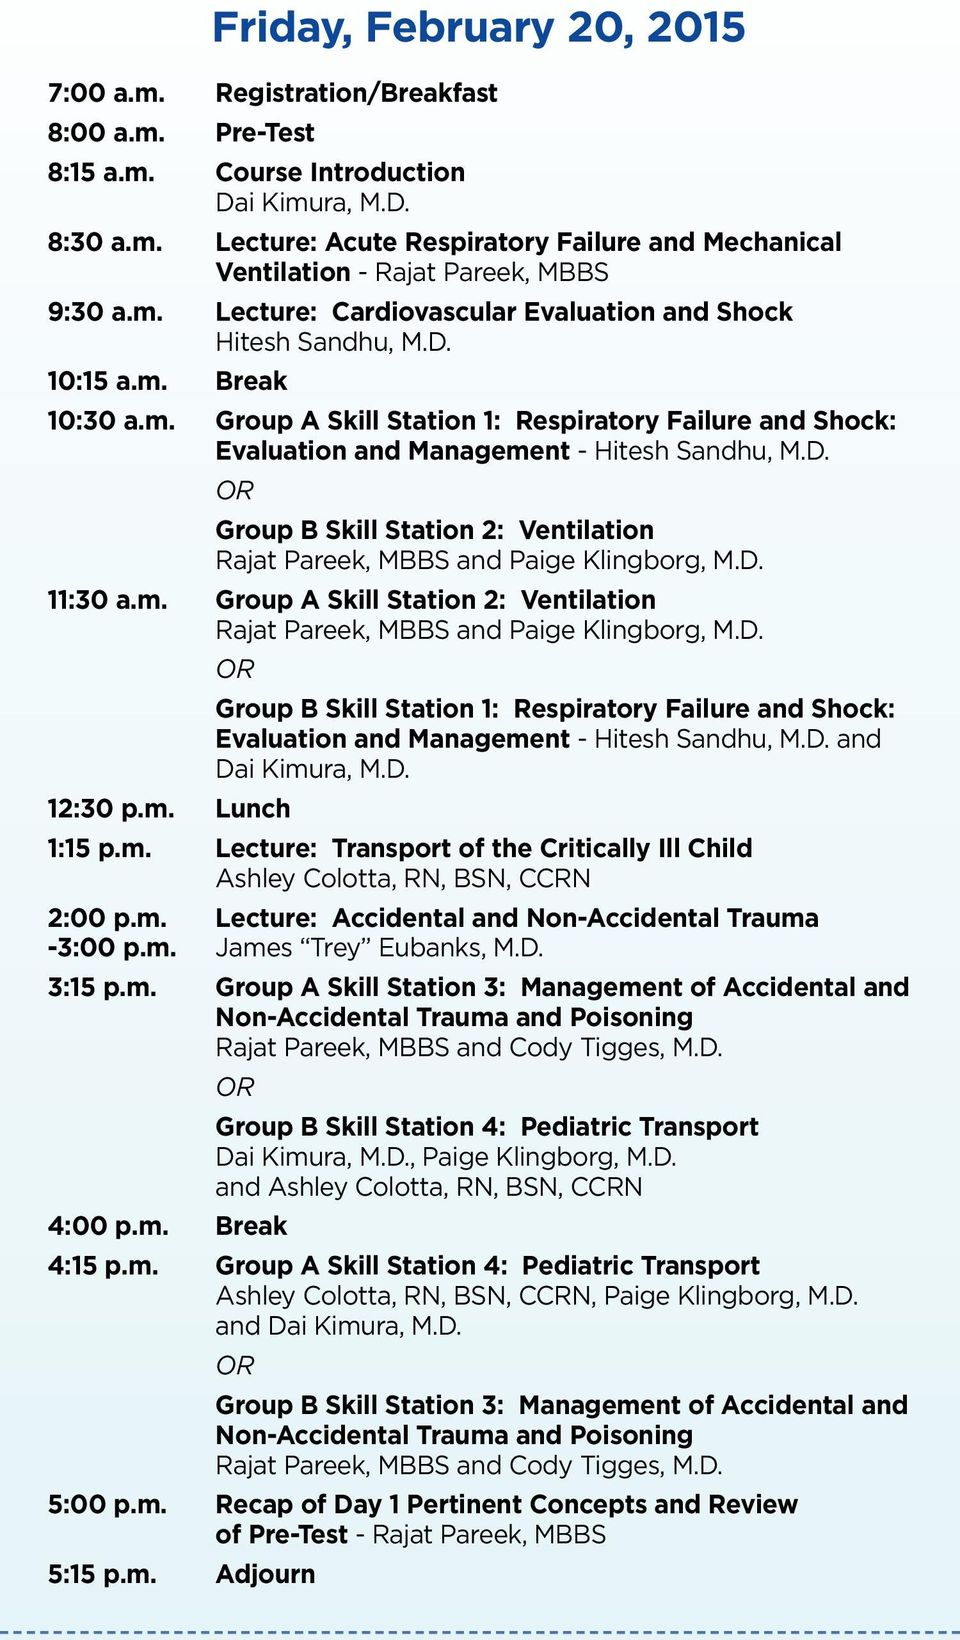 D. 11:30 a.m. Group A Skill Station 2: Ventilation Rajat Pareek, MBBS and Paige Klingborg, M.D. Group B Skill Station 1: Respiratory Failure and Shock: Evaluation and Management - Hitesh Sandhu, M.D. and Dai Kimura, M.